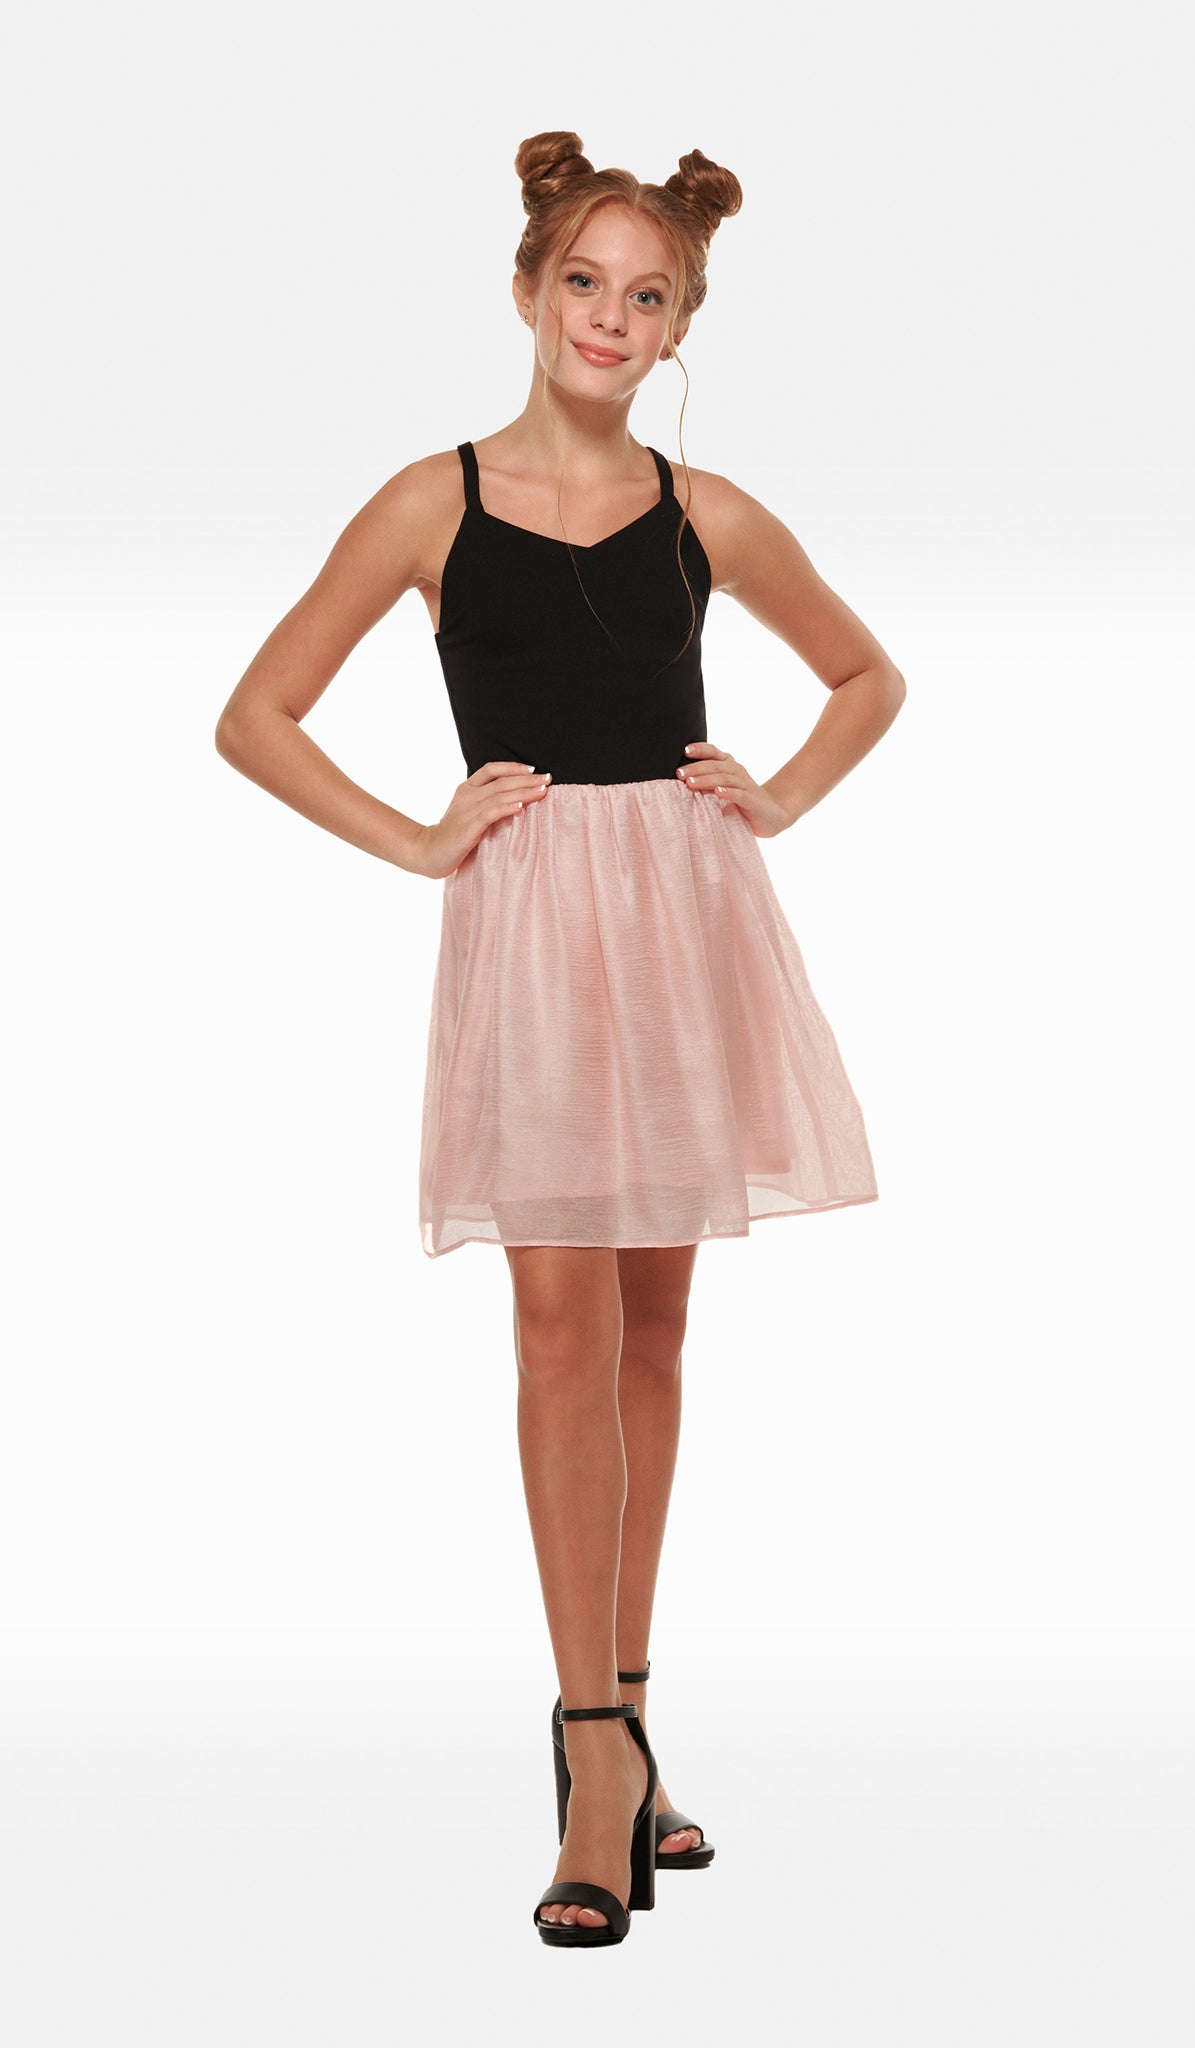 The Sally Miller Alexandra Dress - Black ballet neck super ponti bodice with blush chiffon gathered skirt and side invisible zipper